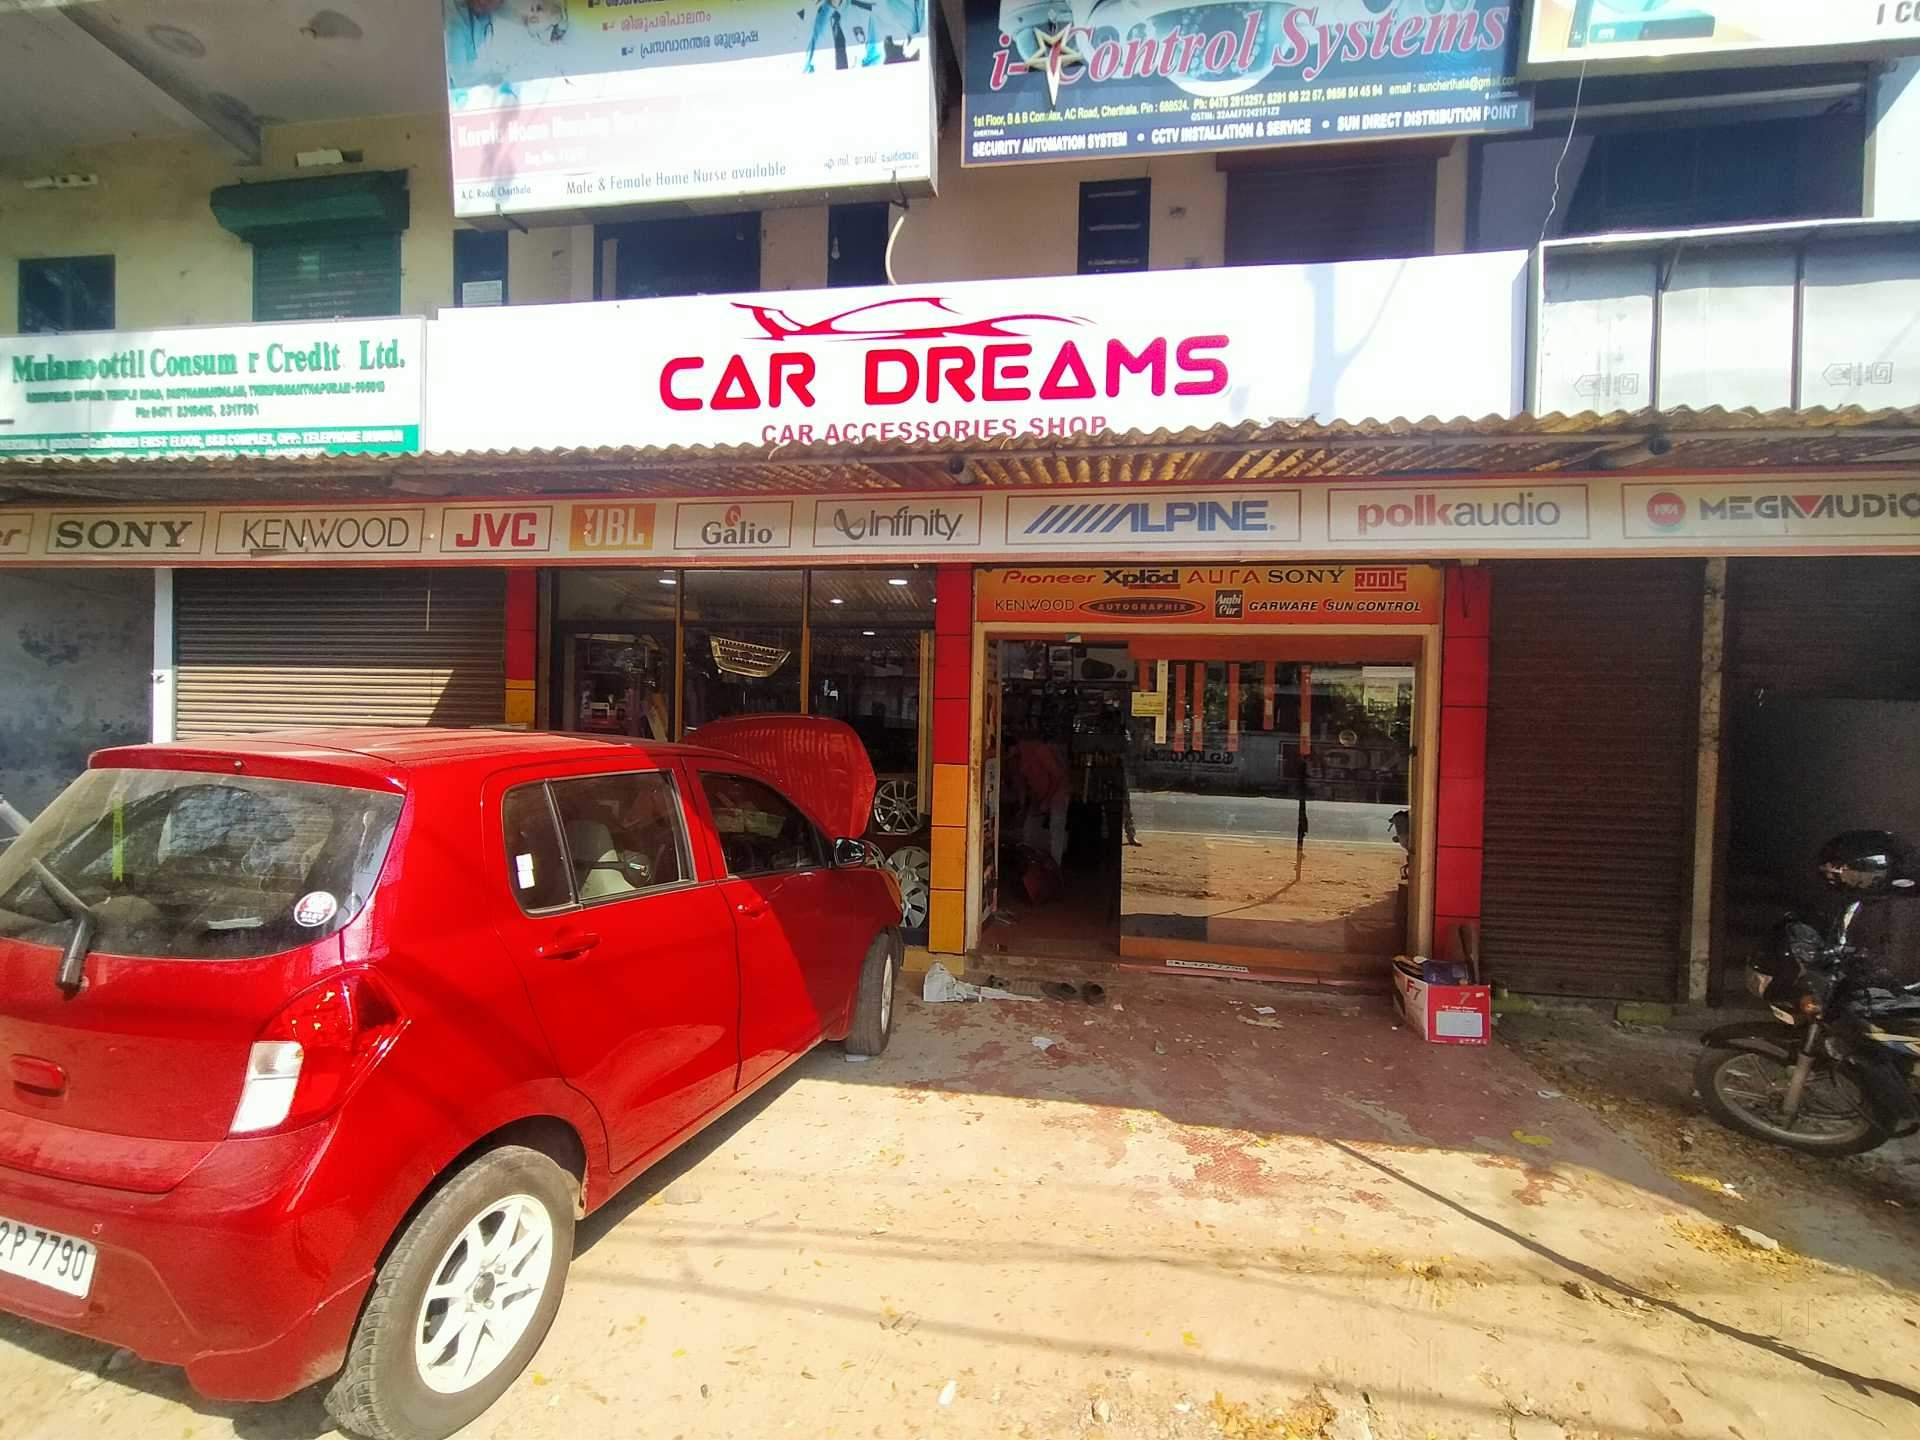 Car Dreams - Car Accessories Shop, ACCESSORIES,  service in Cherthala, Alappuzha